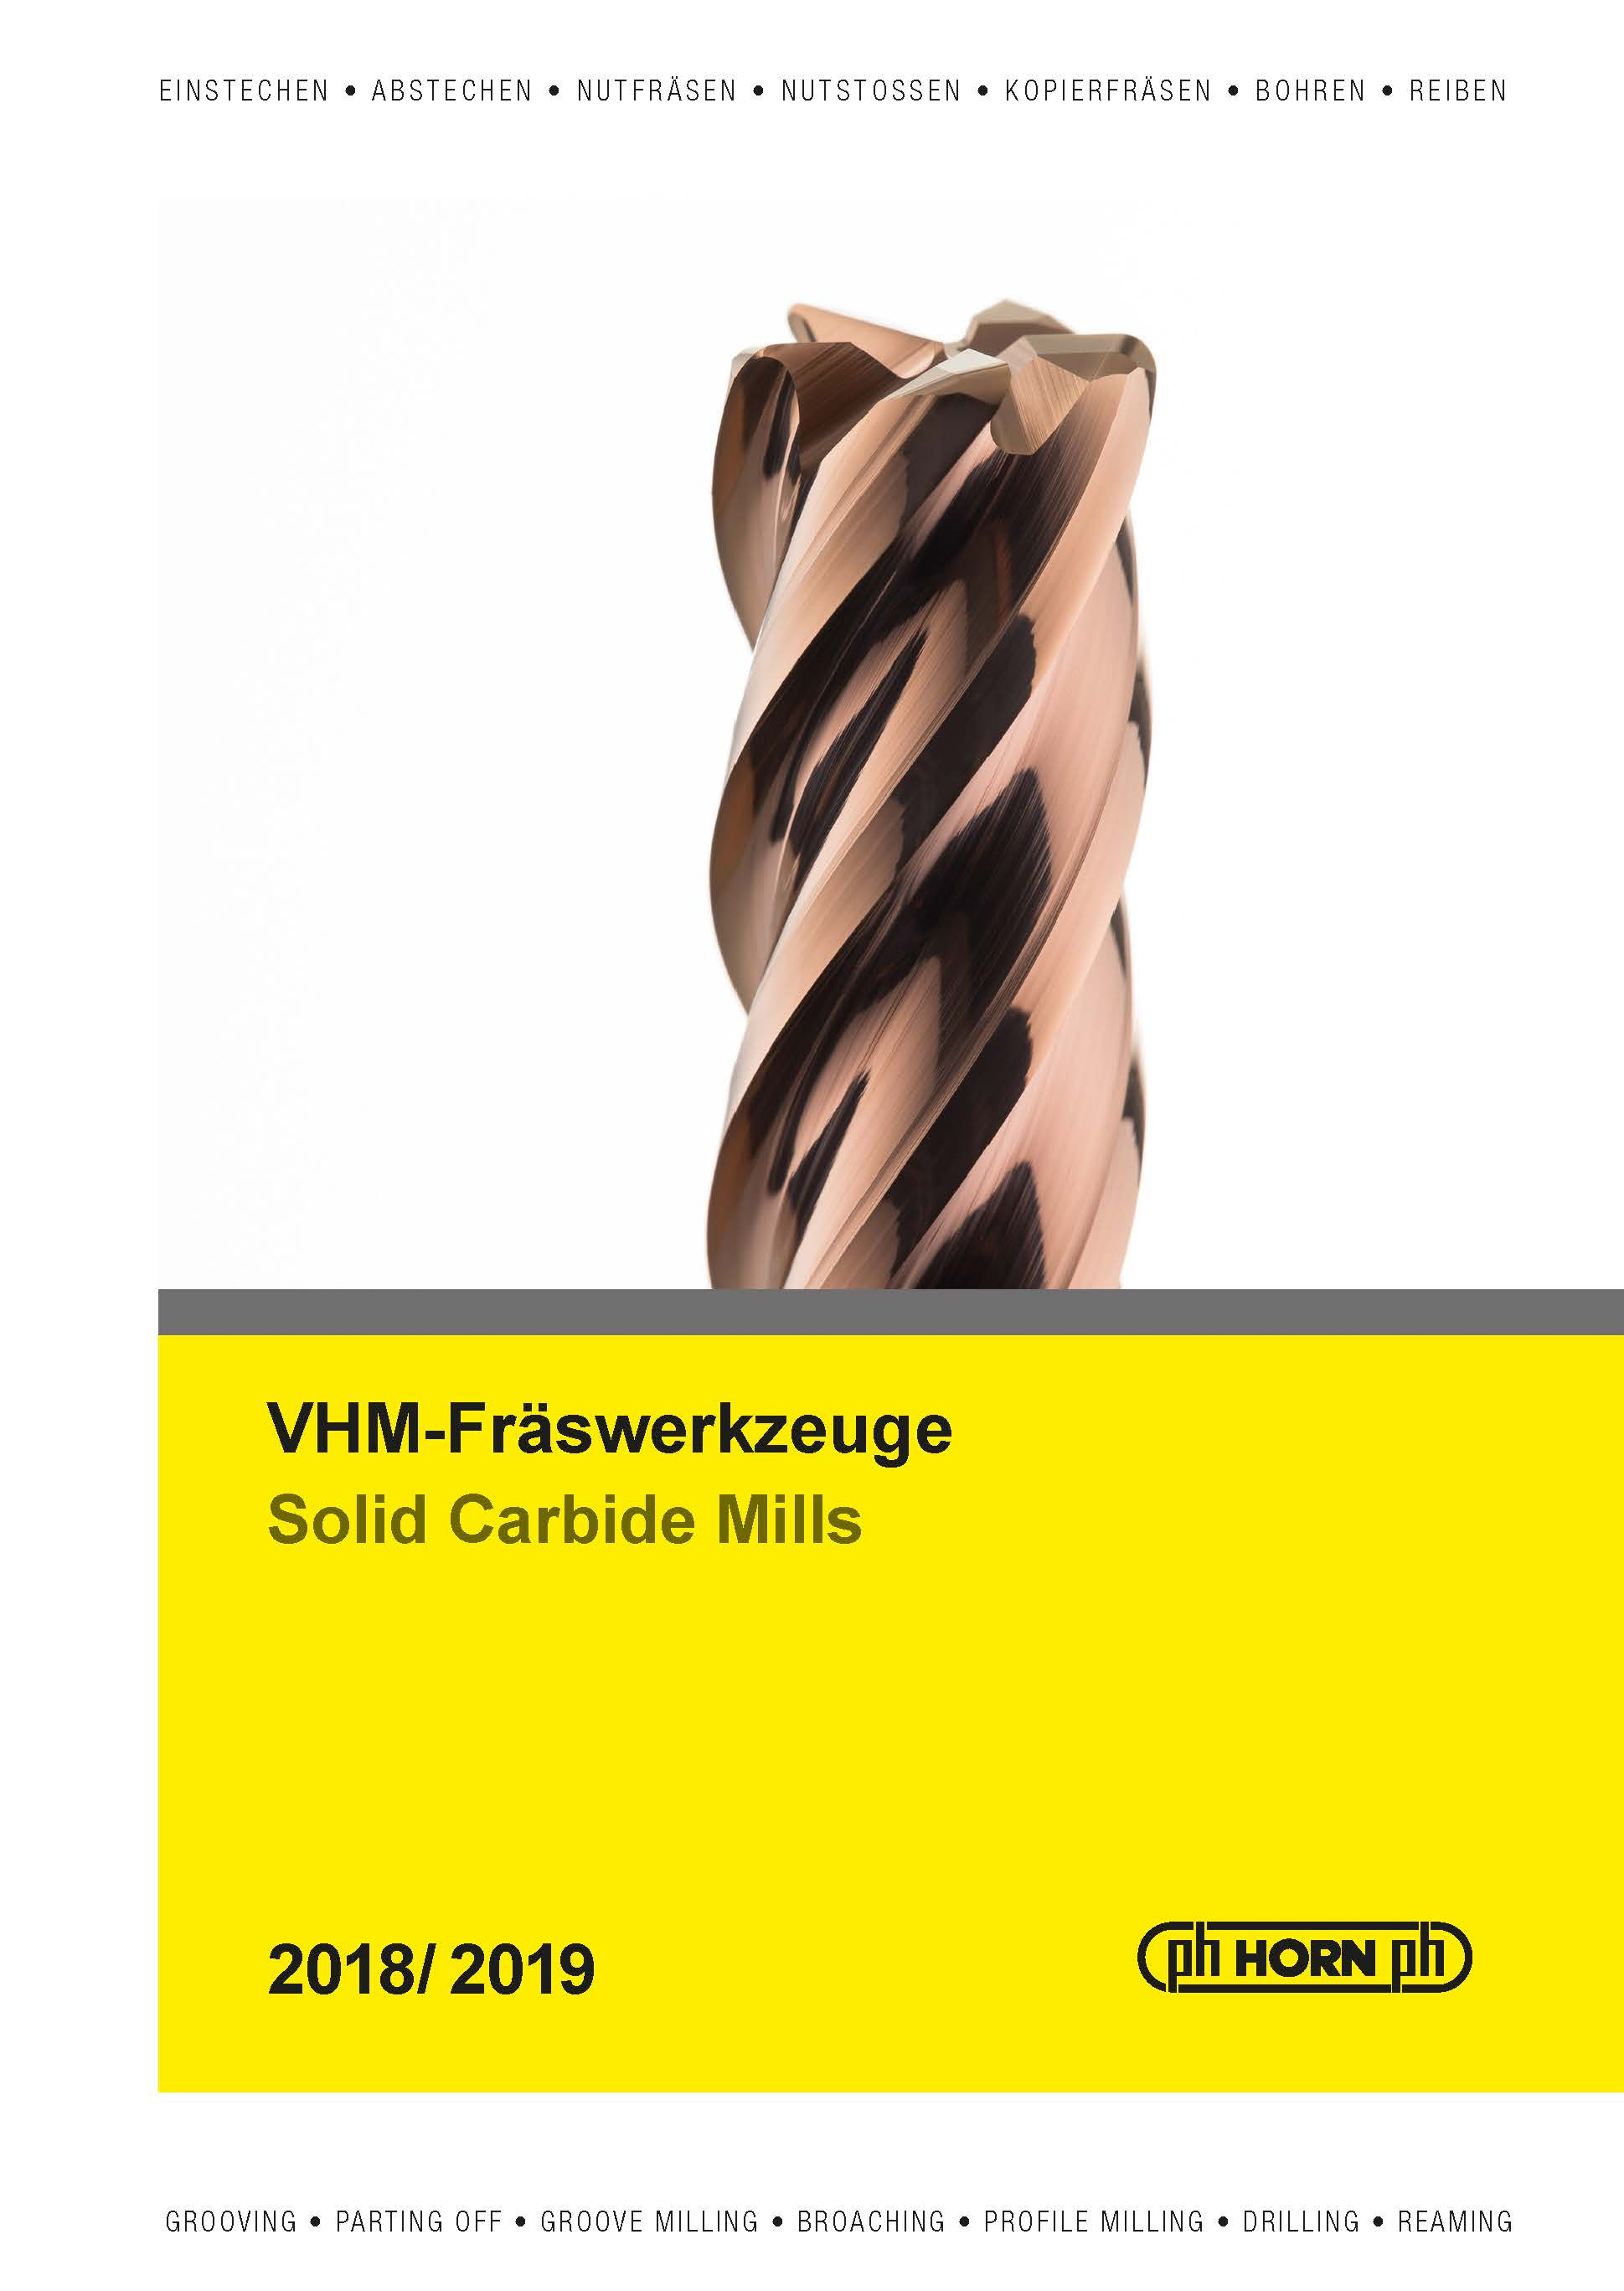 Download Solid Carbide Mills Catalogue